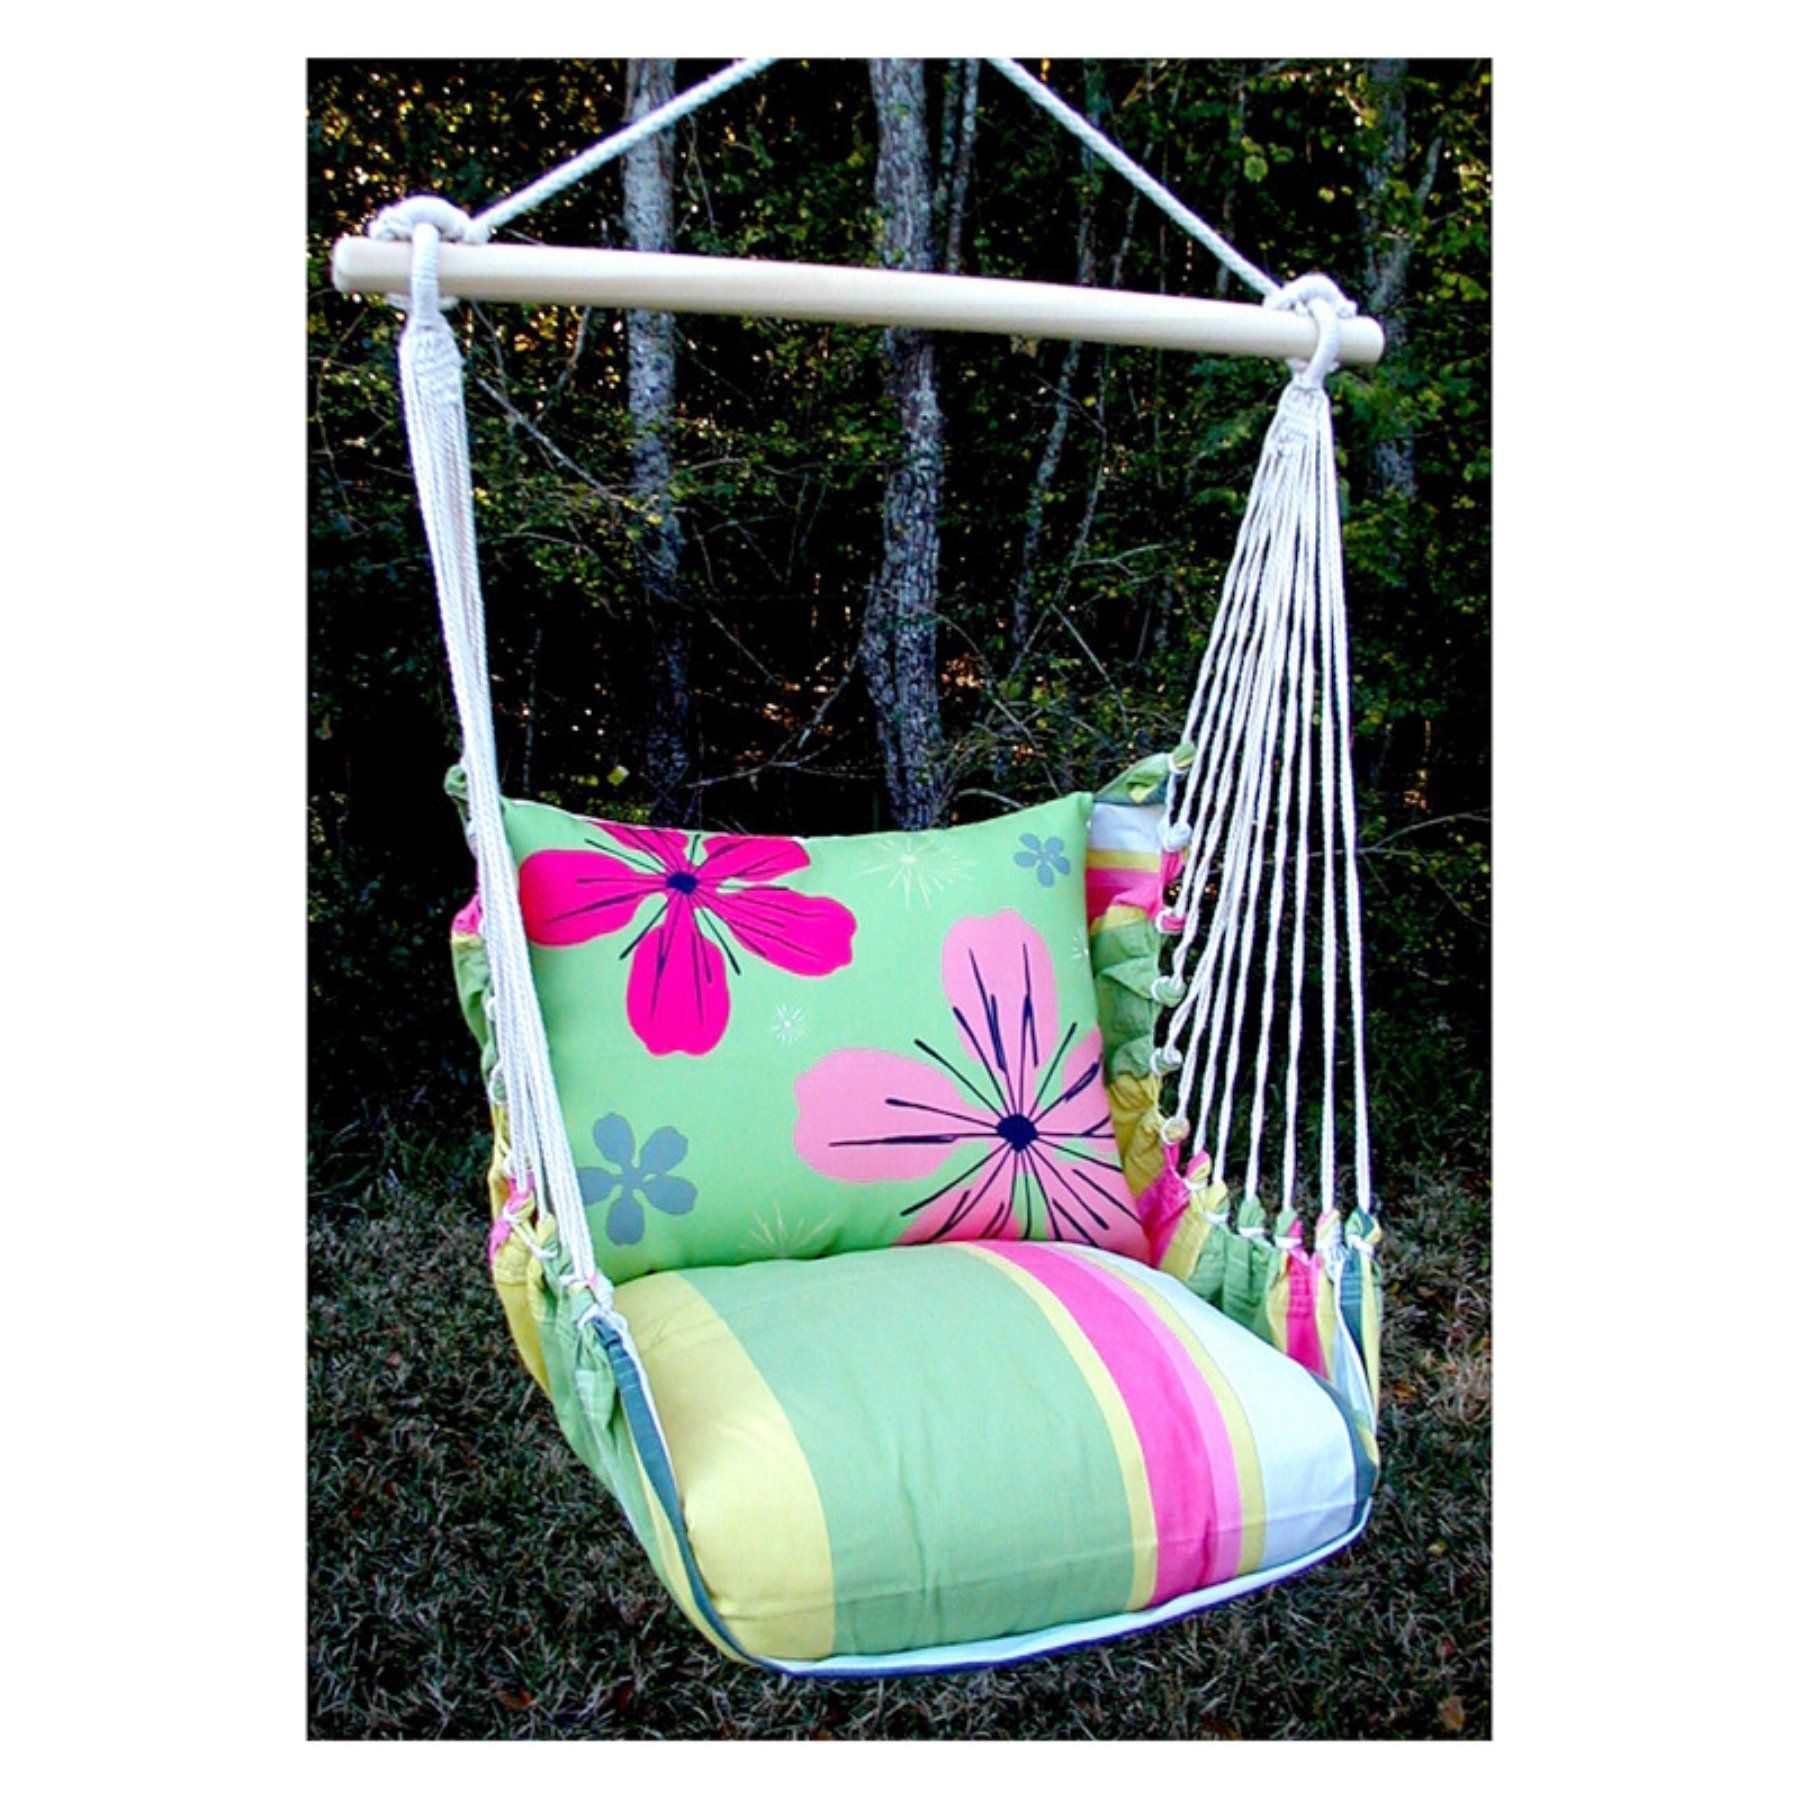 Outdoor magnolia casual garden flowers hammock chair and pillow set